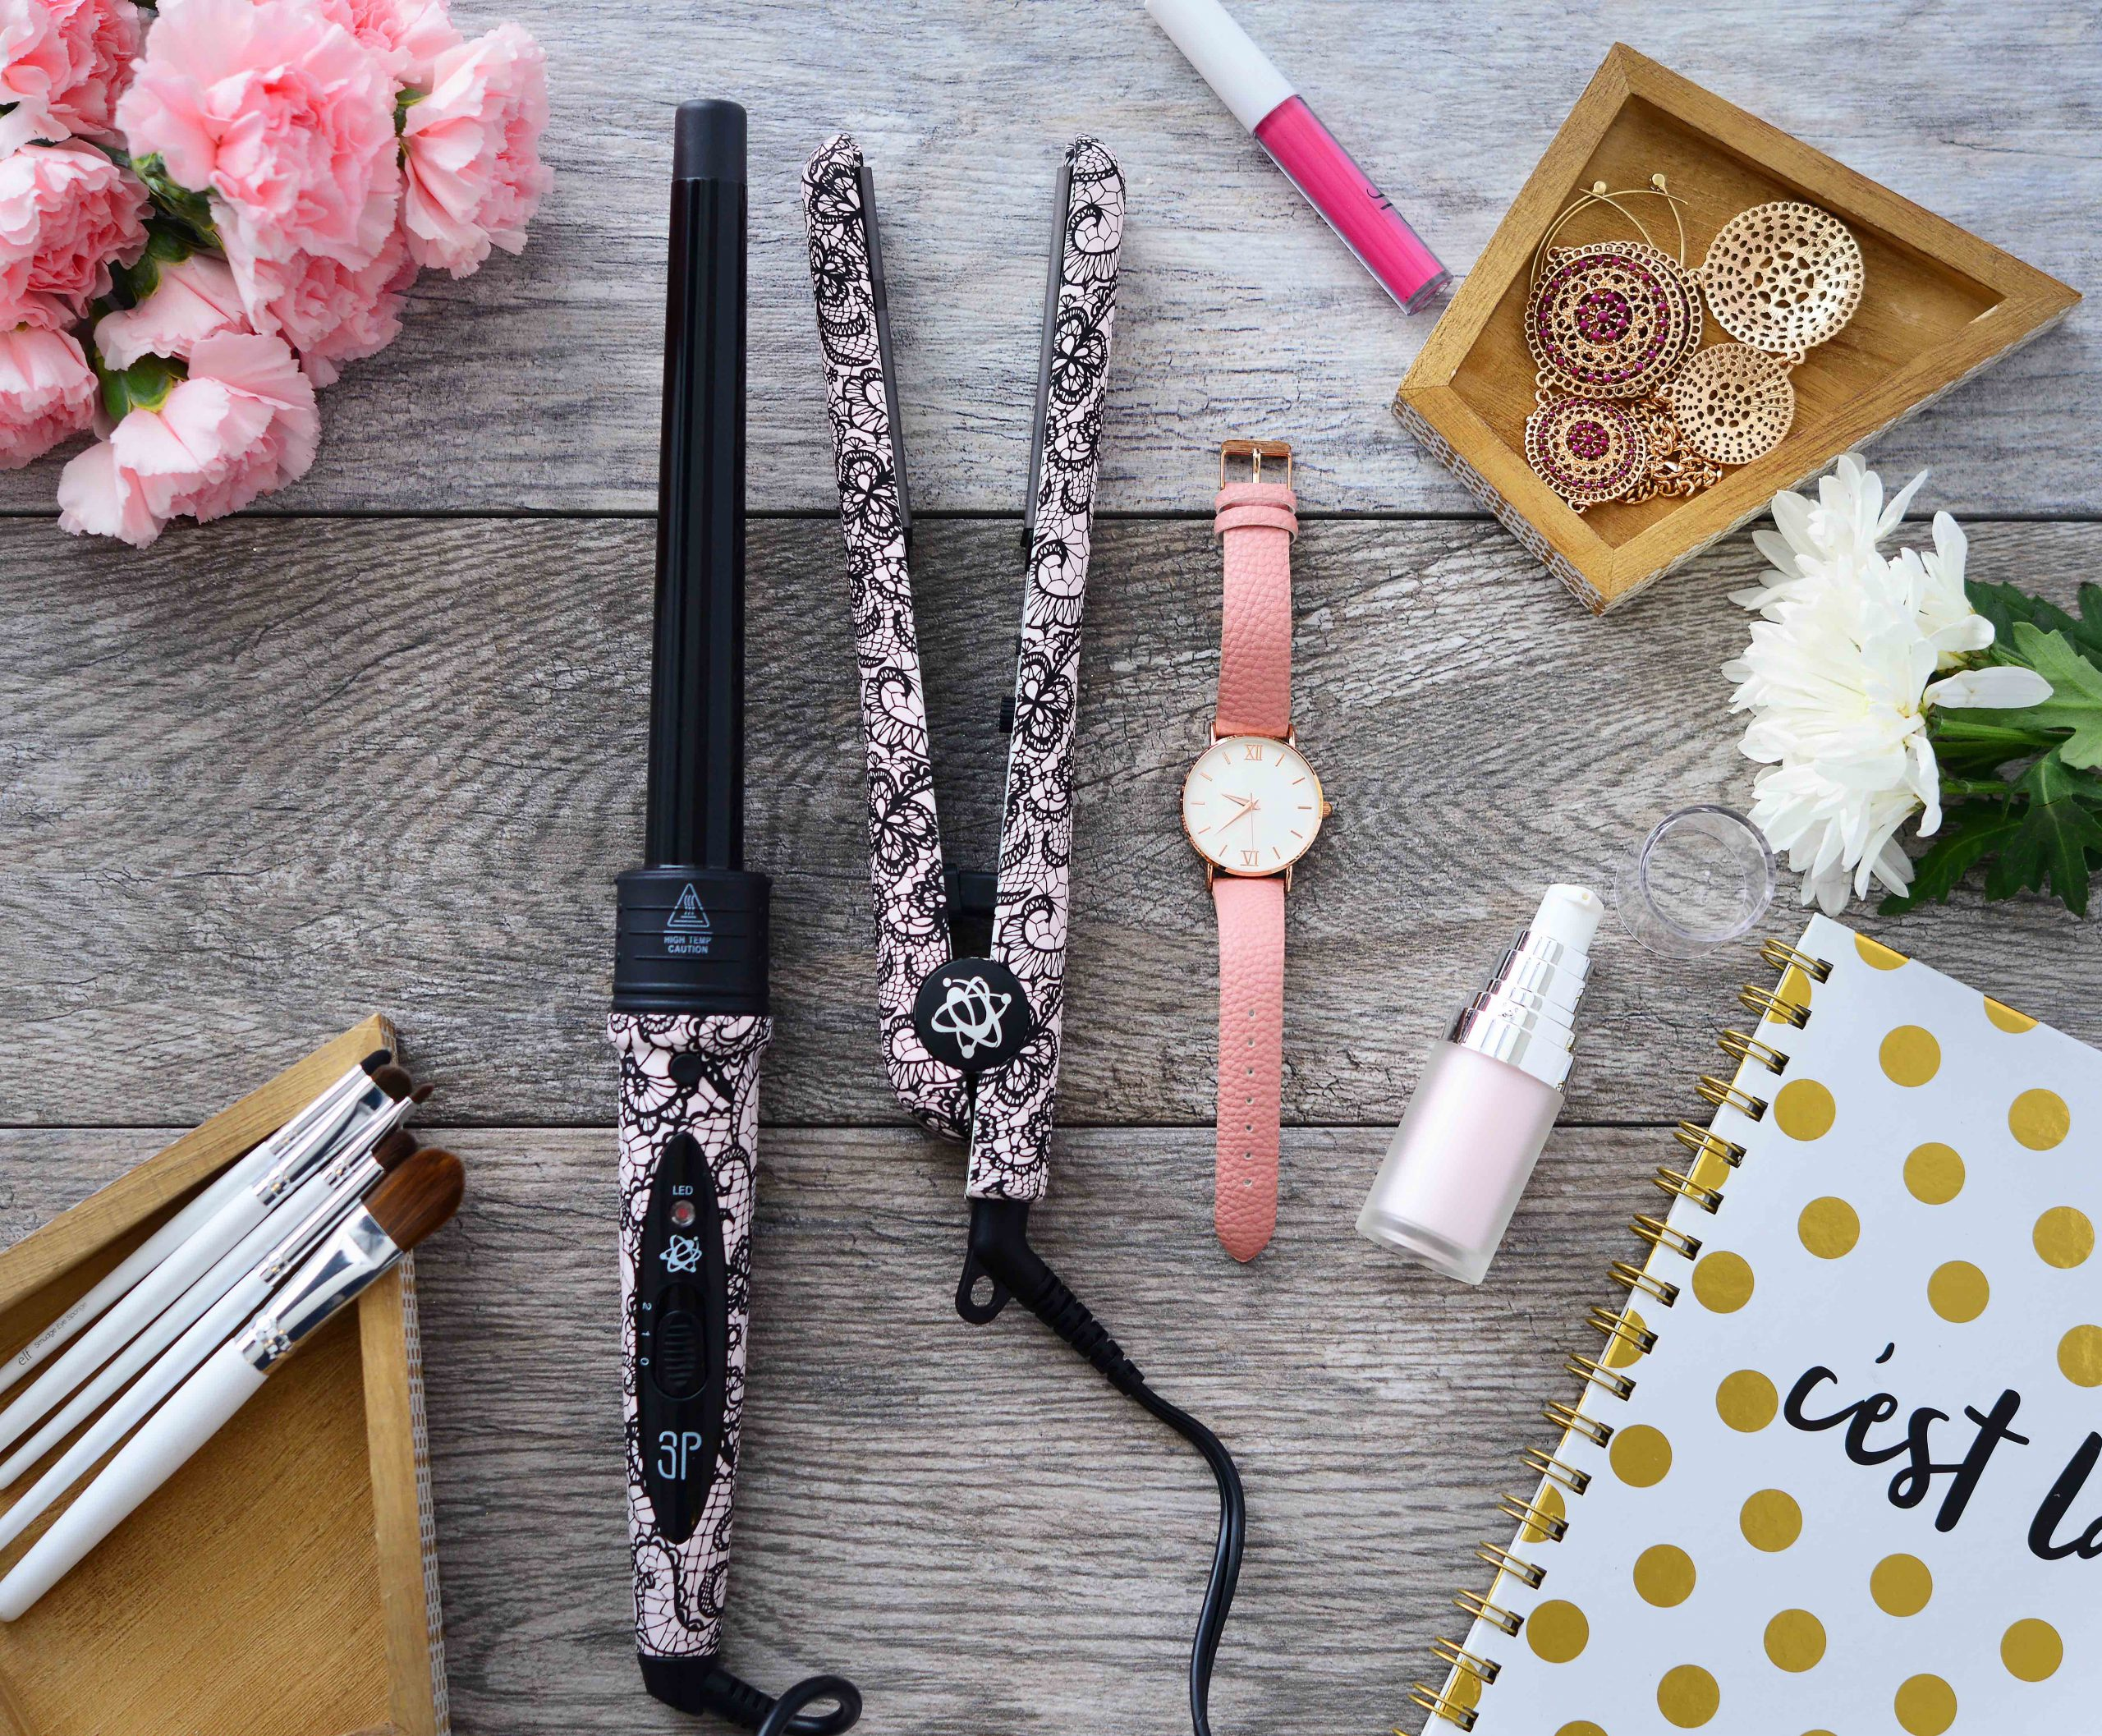 Evalectric hair styling tools